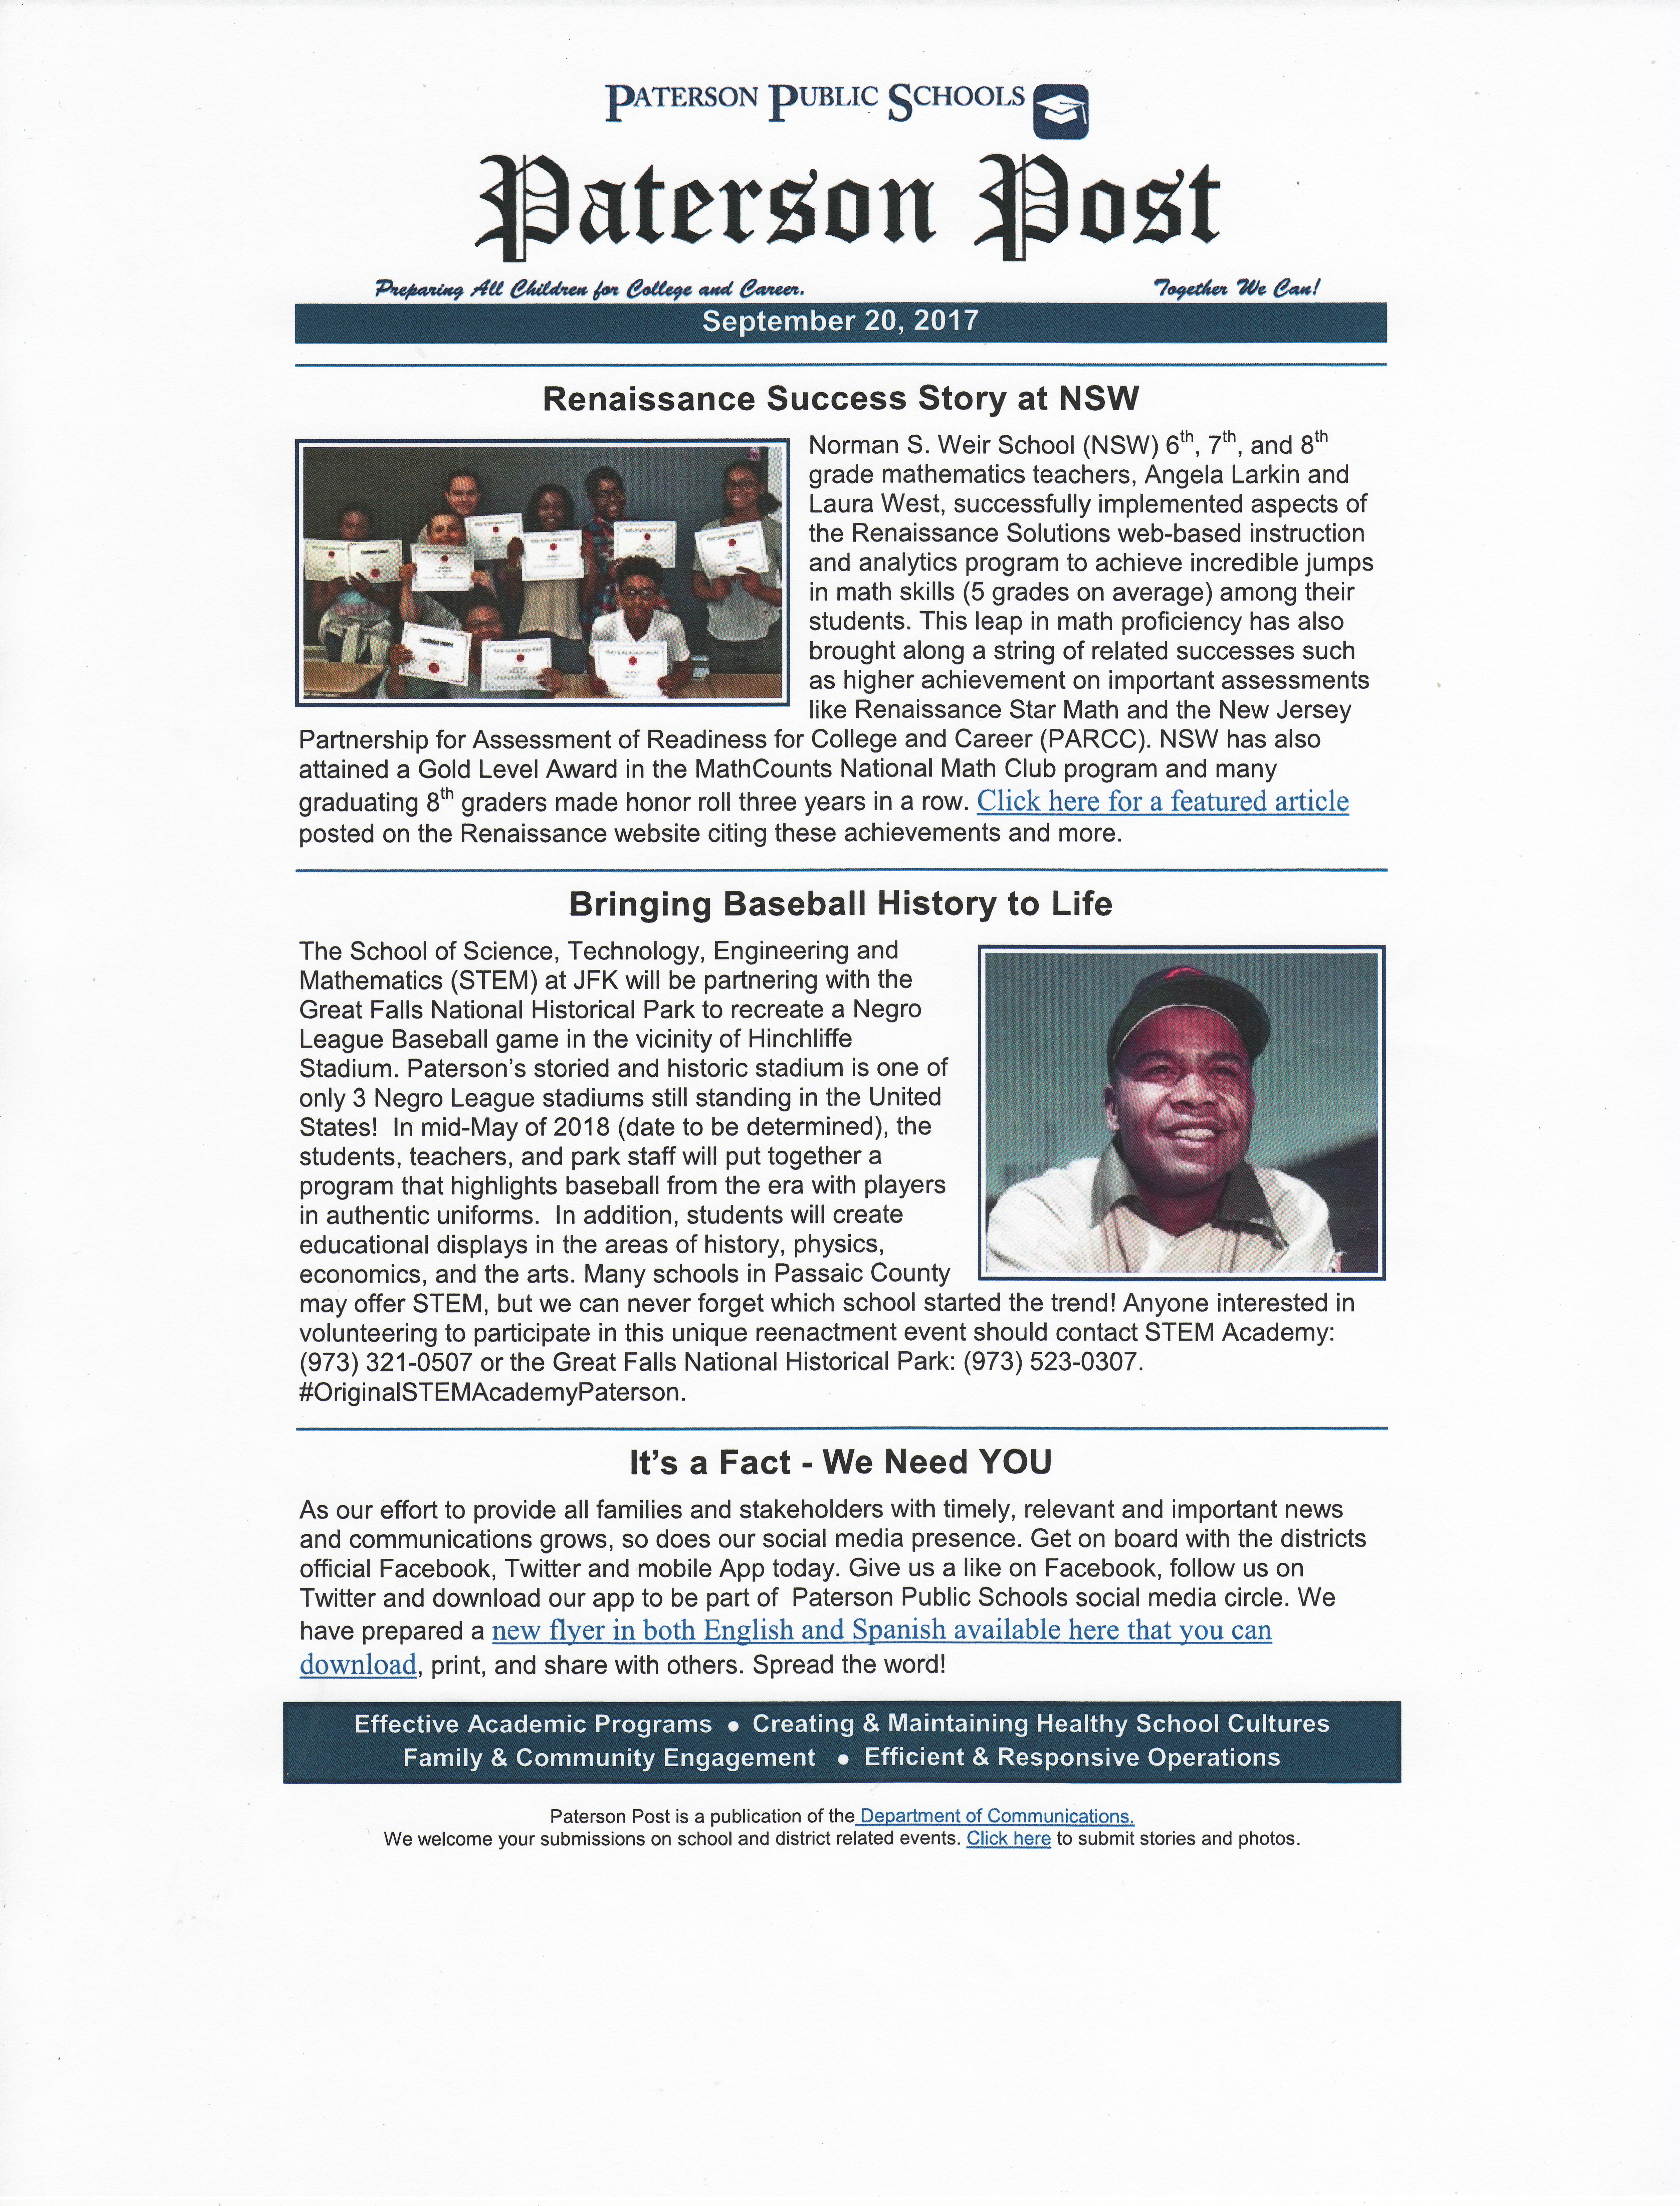 Norman S. Weir In Paterson Public School News